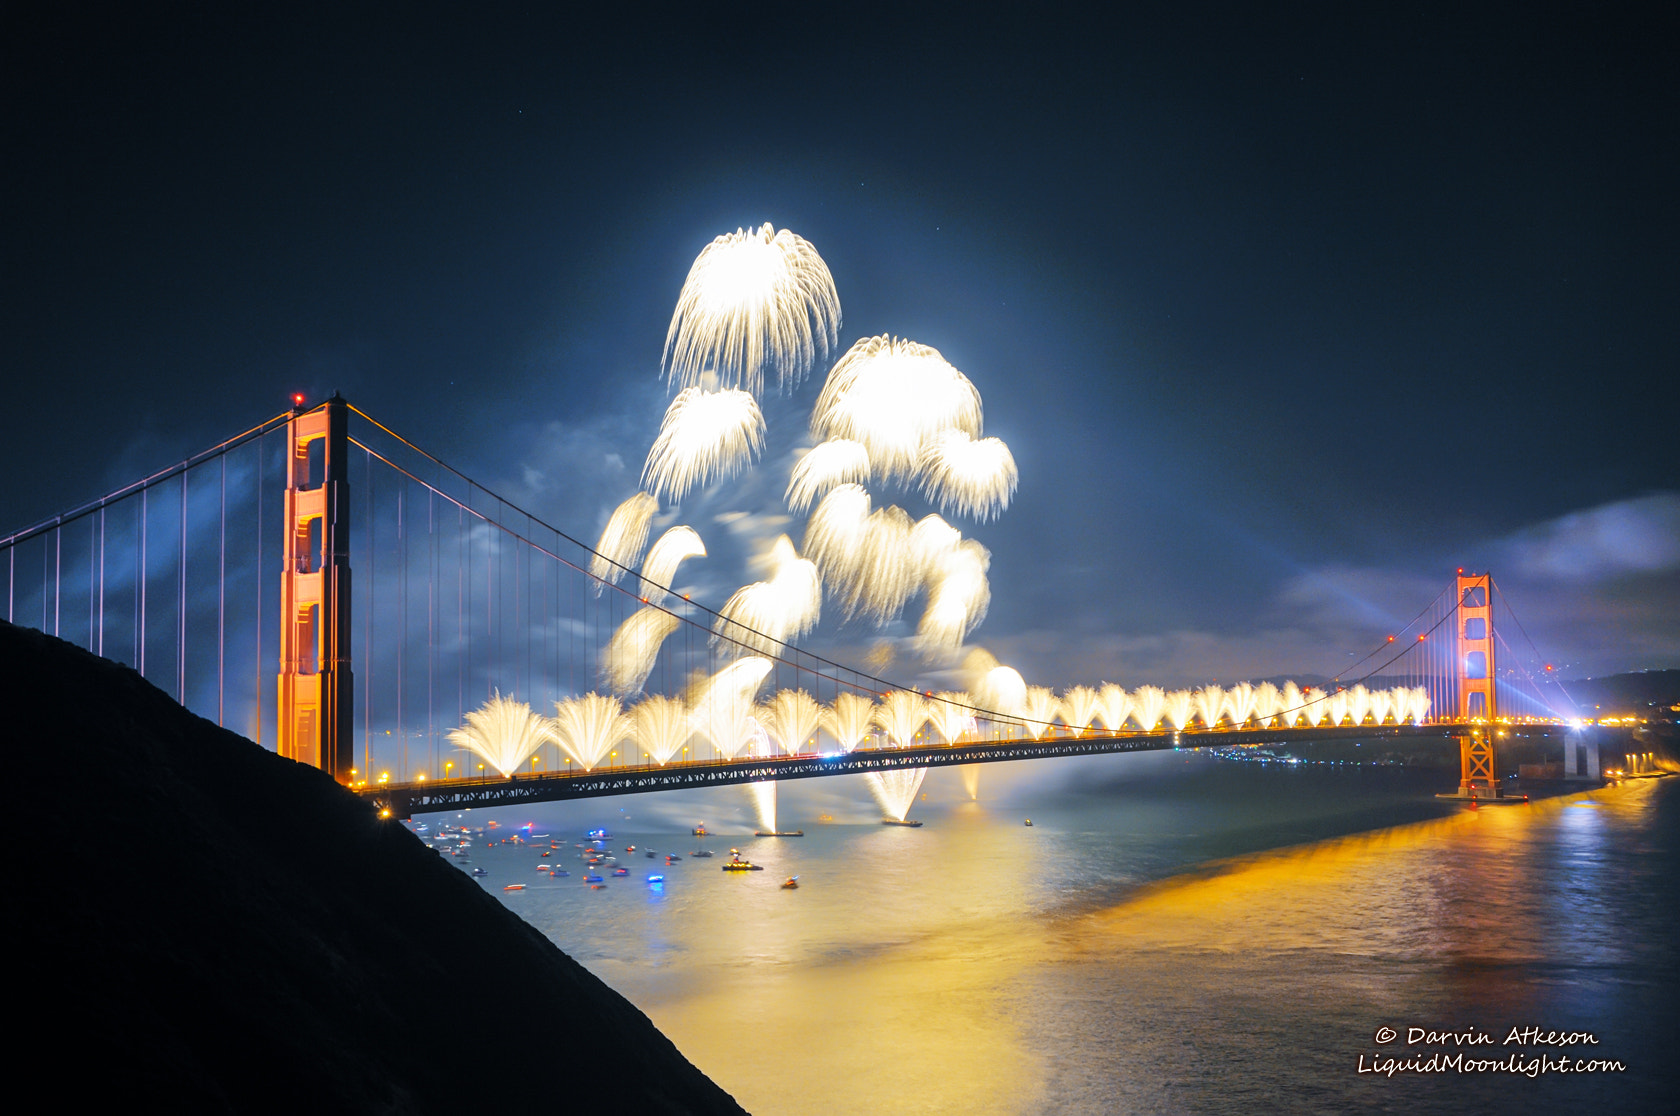 Photograph Fanfare - Golden Gate Bridge 75th Anniversary by Darvin Atkeson on 500px